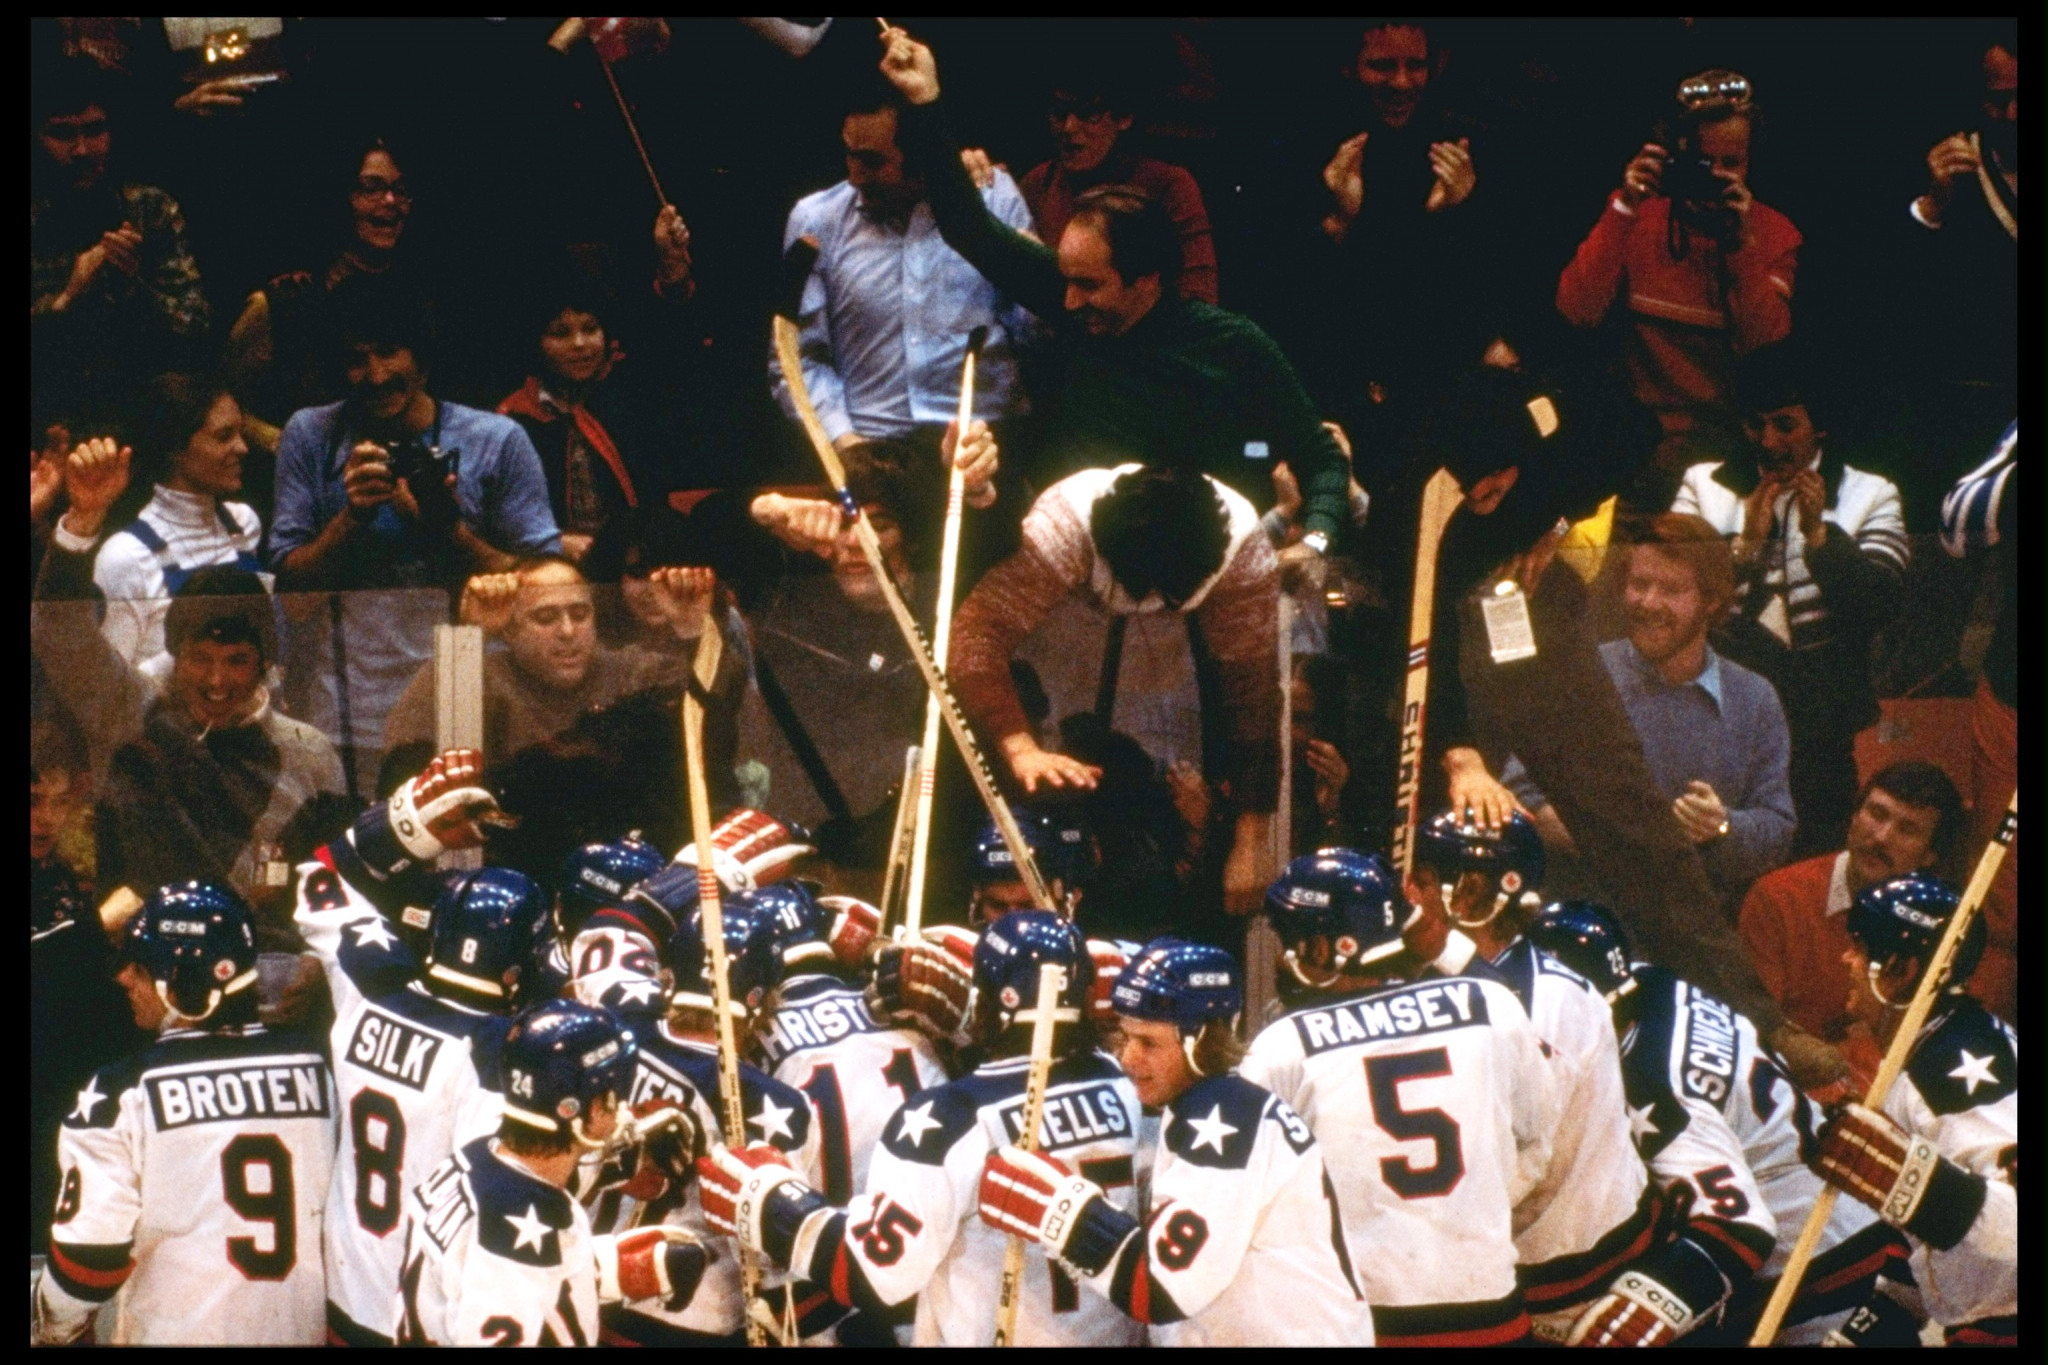 Forty years after their 'Miracle on Ice' win over the Soviet Union at the Lake Placid 1980 Olympics, members of the US ice hockey team will reunite in Las Vegas ©Getty Images